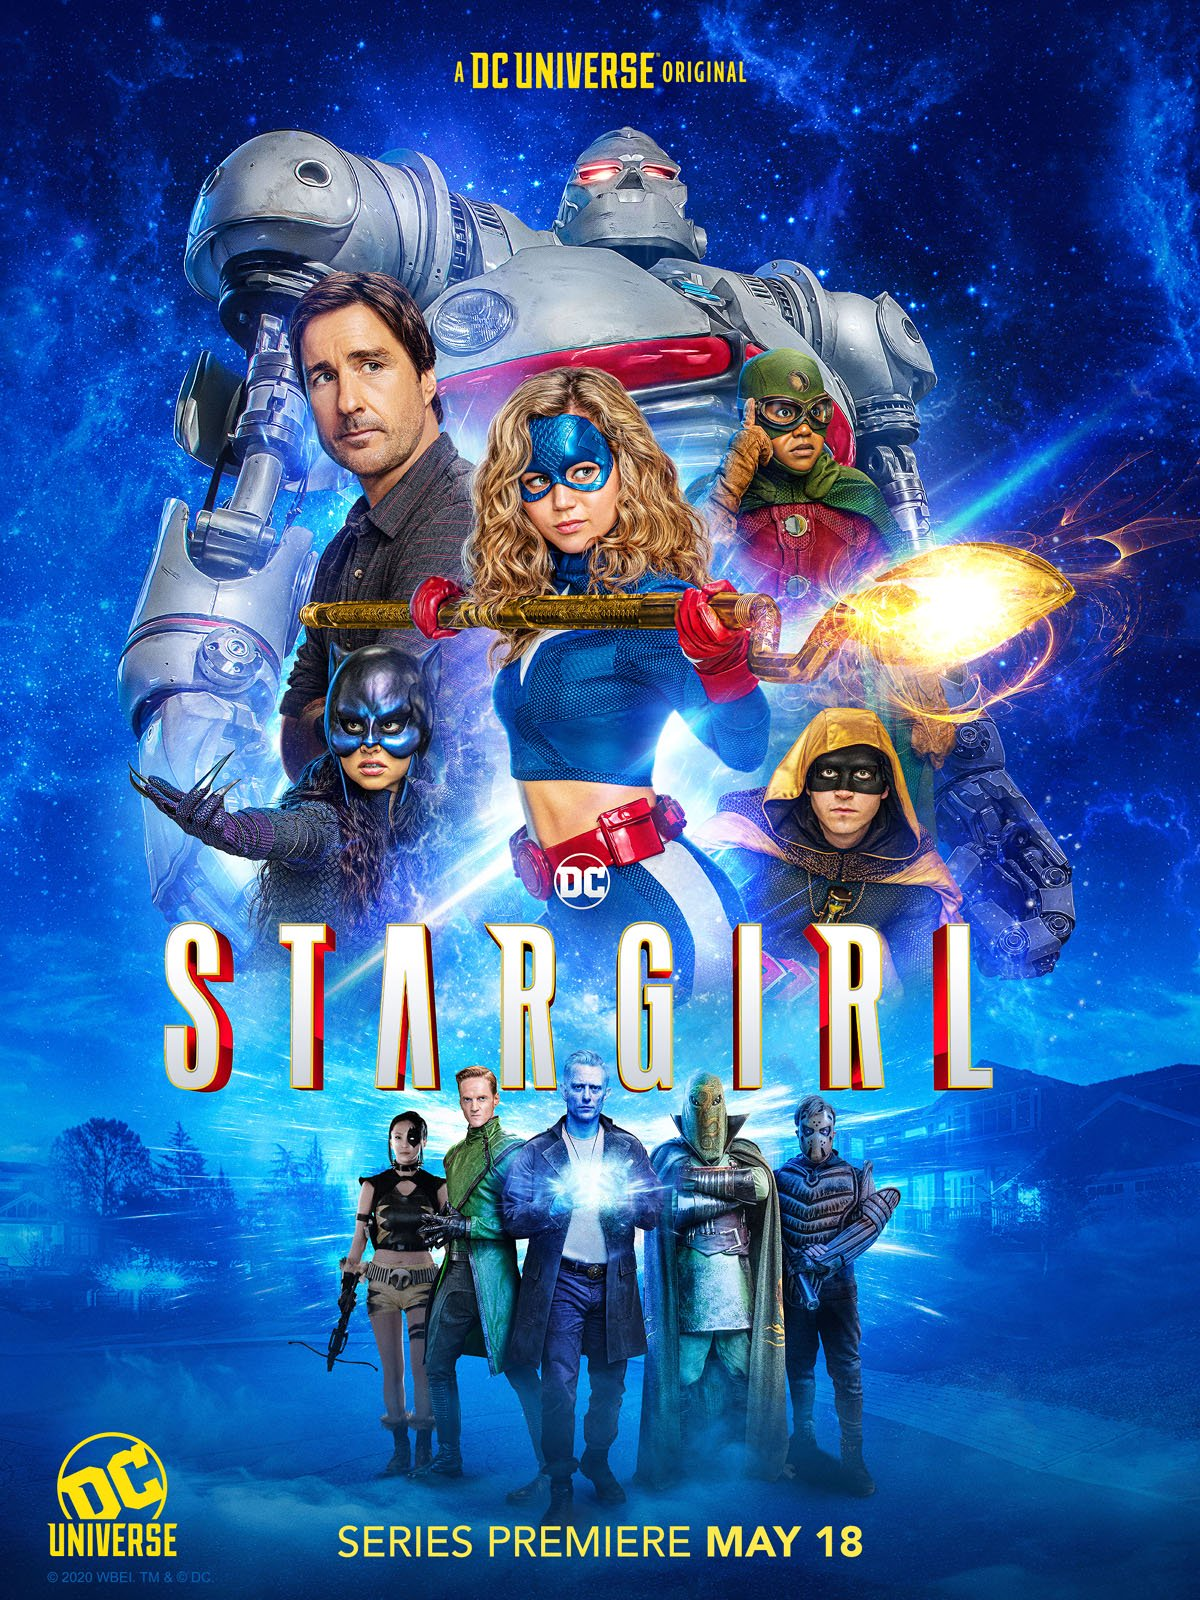 'STARGIRL' GETS A SEASON 2: BUT NOT ON 'DC UNIVERSE'